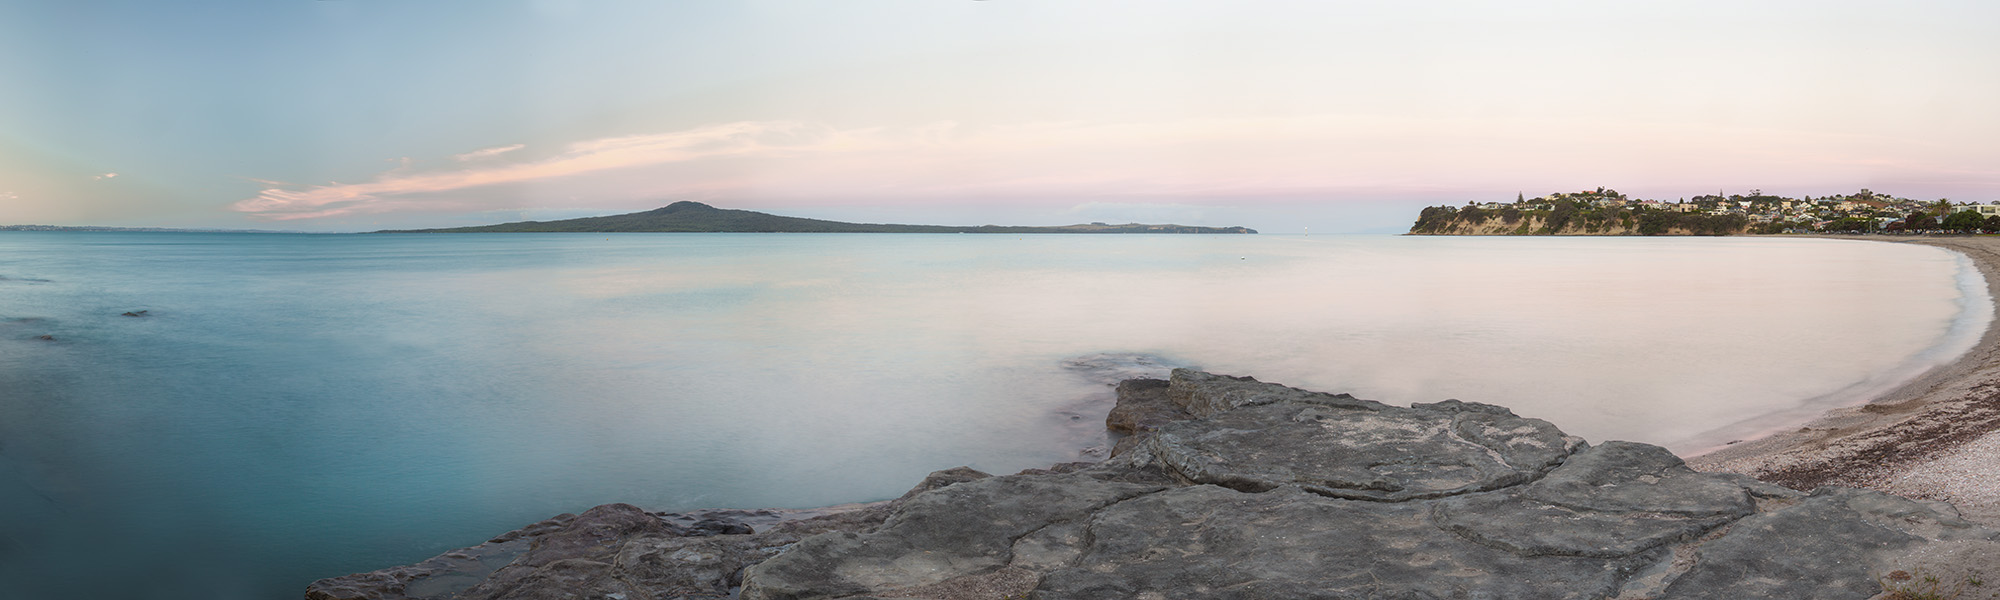 (STHEL 2015-5) - St. Heliers sunset